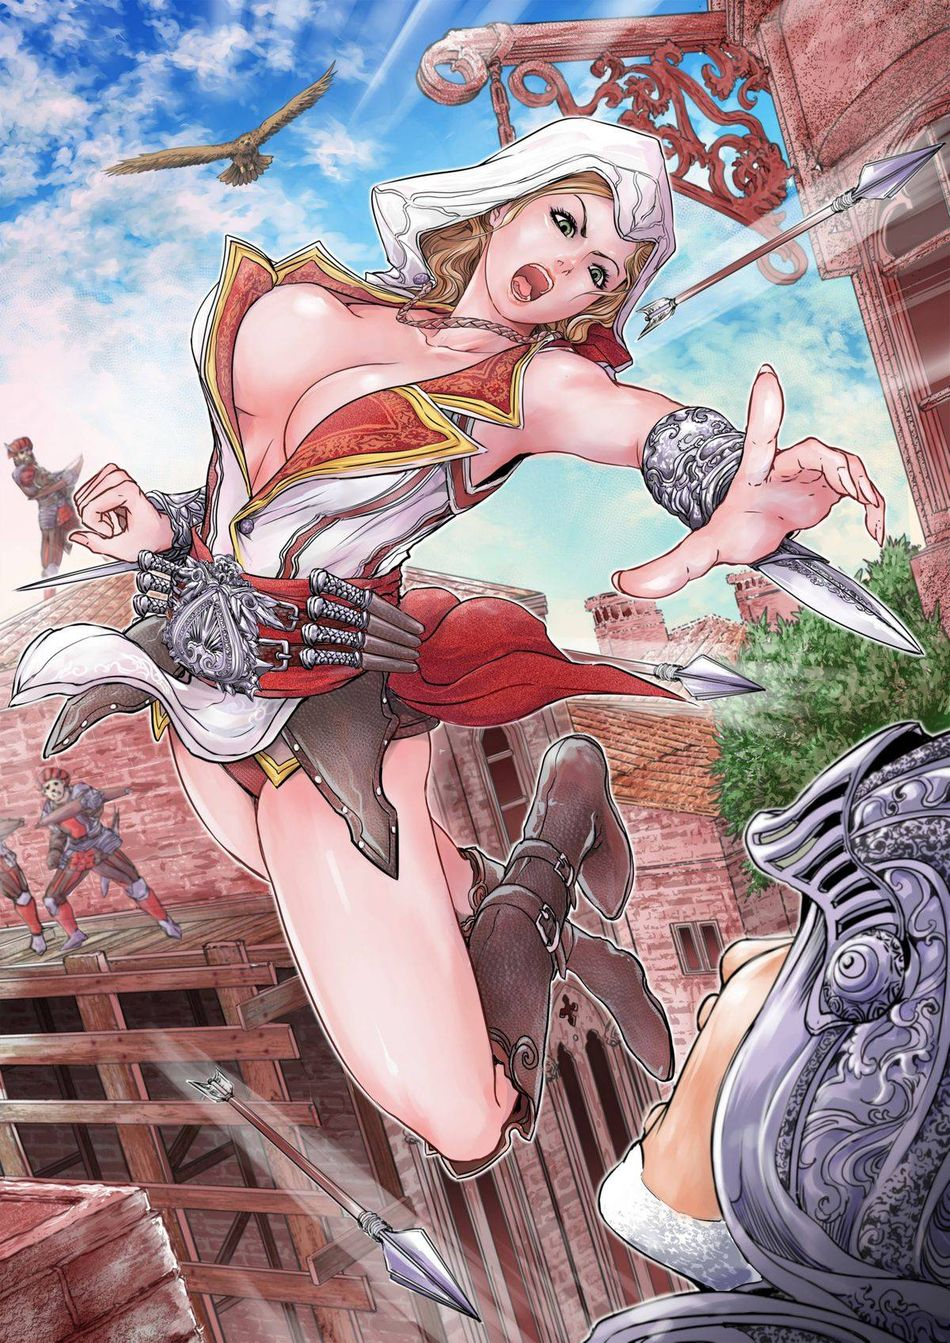 Assasscrons Creed Porno torn s] assassin s xxx ii assassin s creed hentai page 3 of